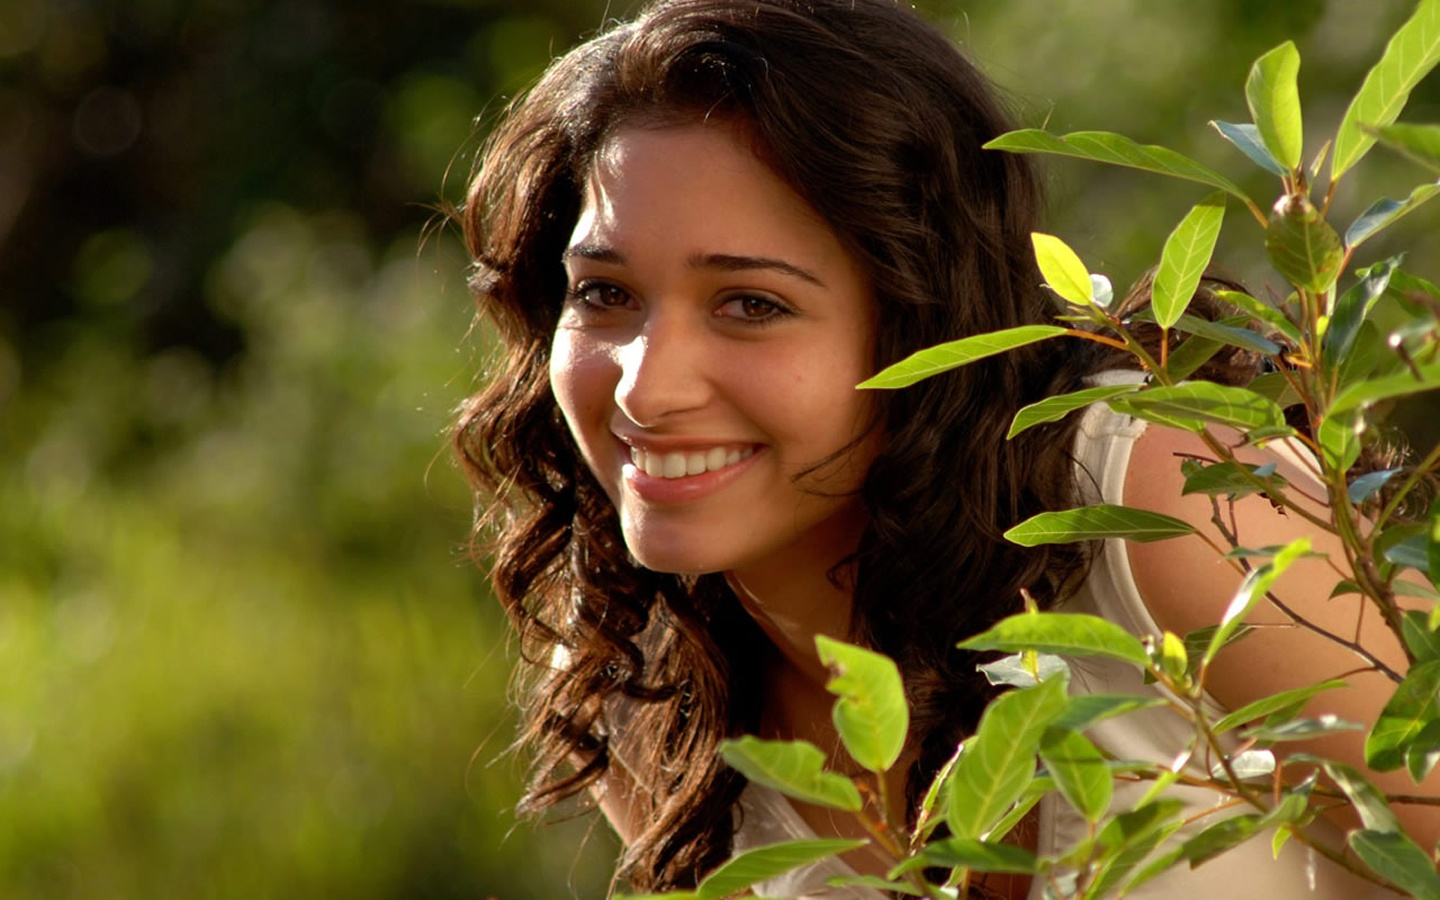 Tamana Hd: Wallpapers: Tamanna Bhatia HD Wallpaper